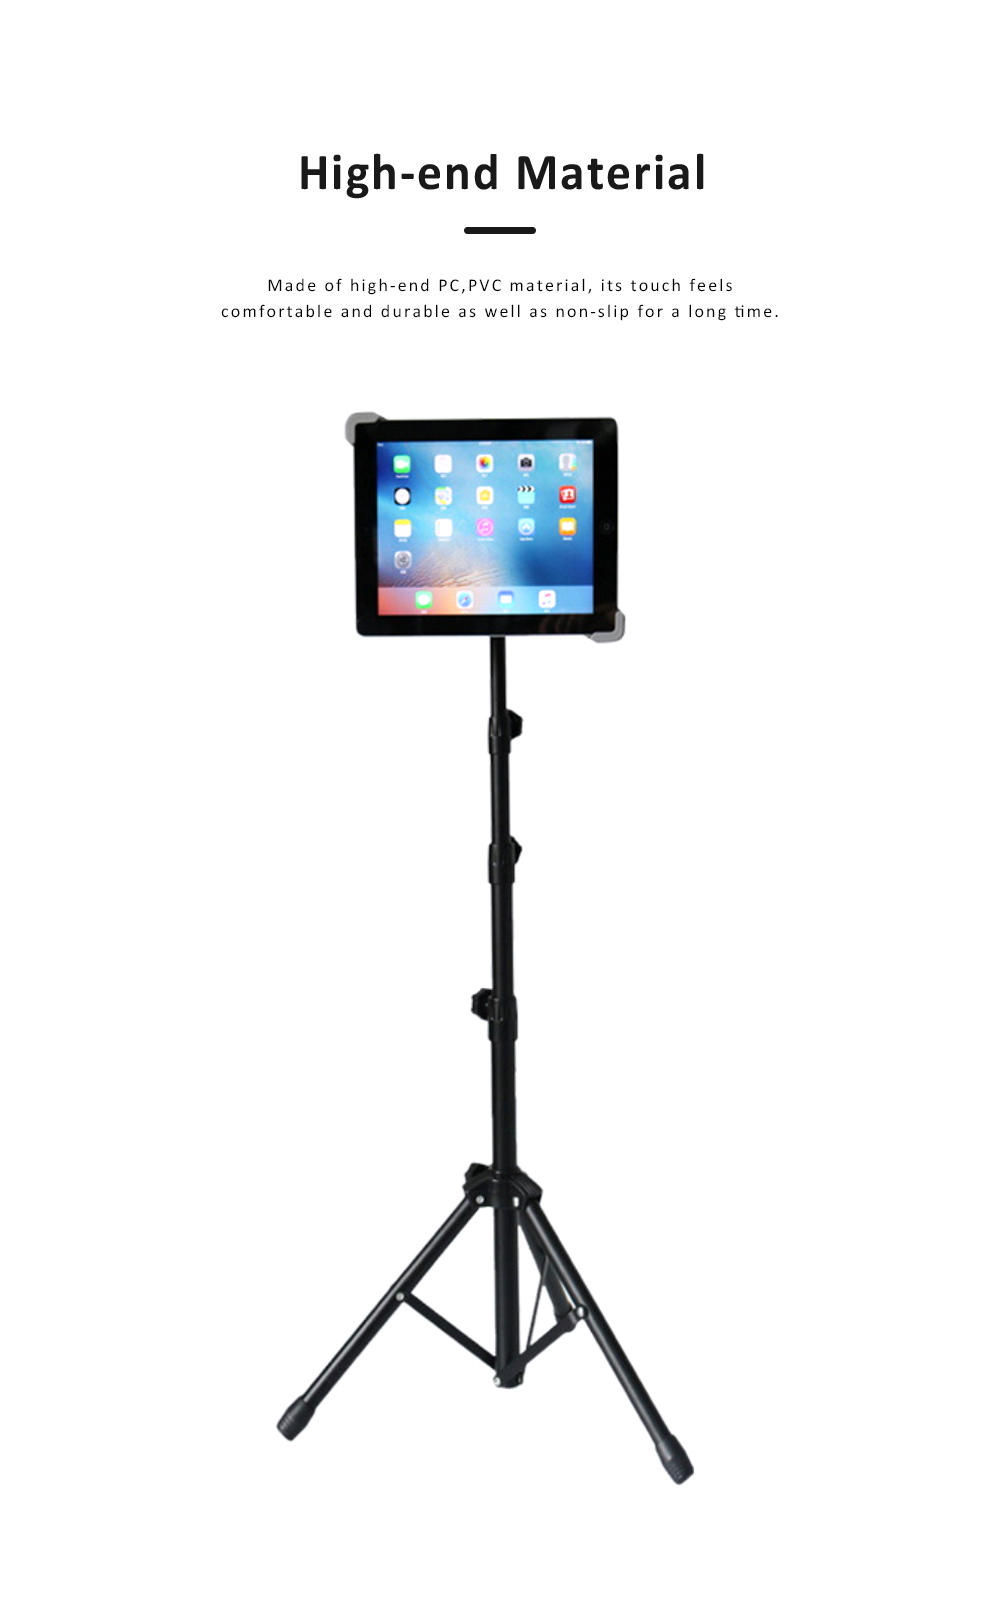 Aluminum Triangle Foot Tablet Stands, Retractable Mini Triangle Stands for iPad 7-12 inch 3